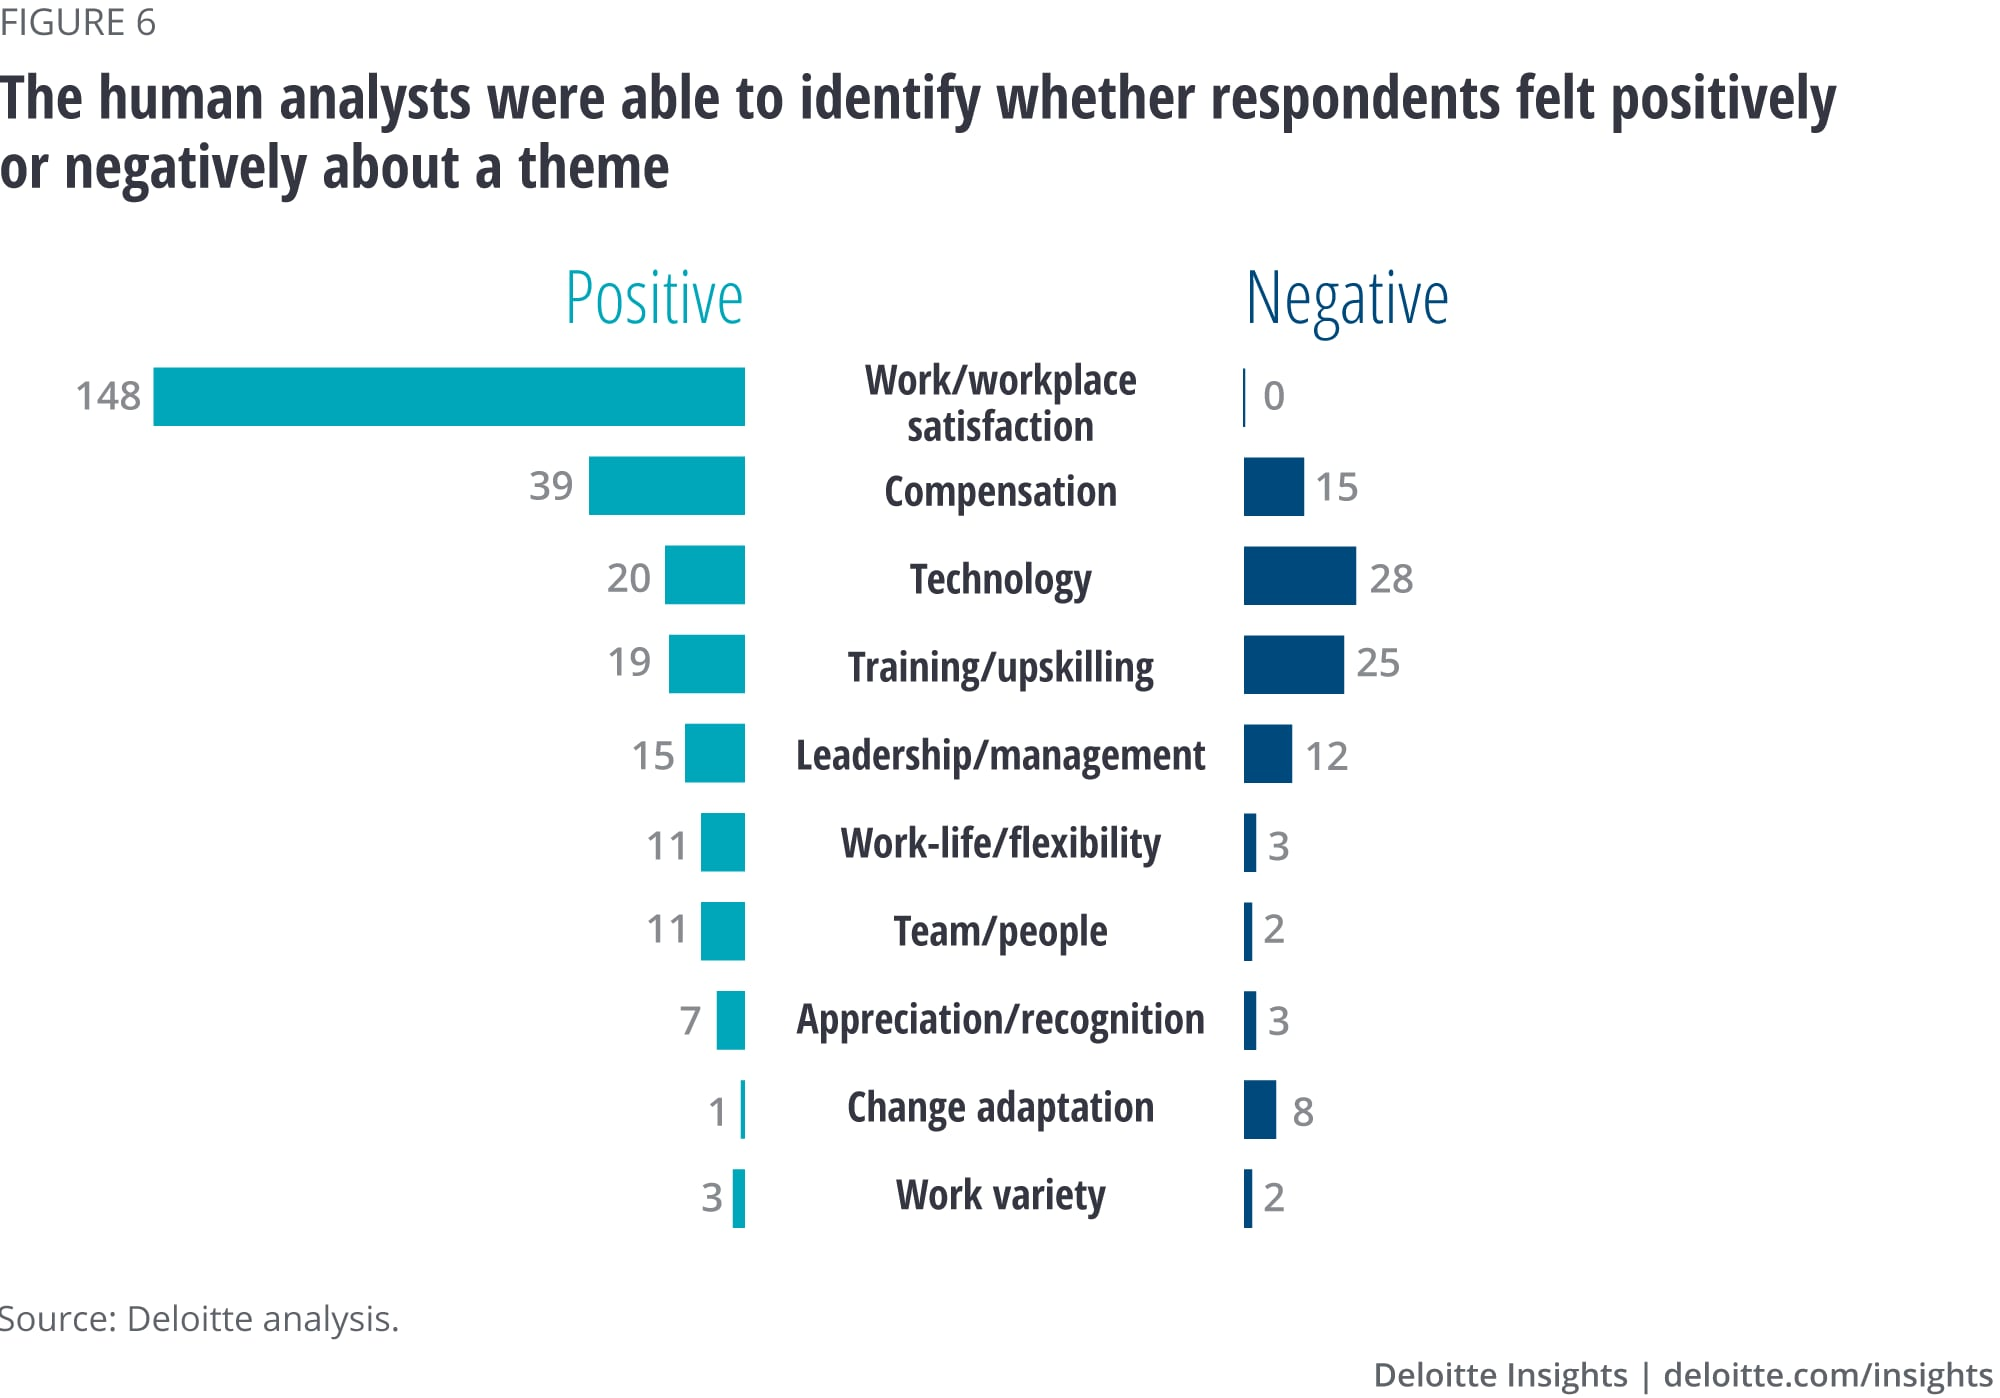 The human analysts were able to identify whether respondents felt positively or negatively about a theme